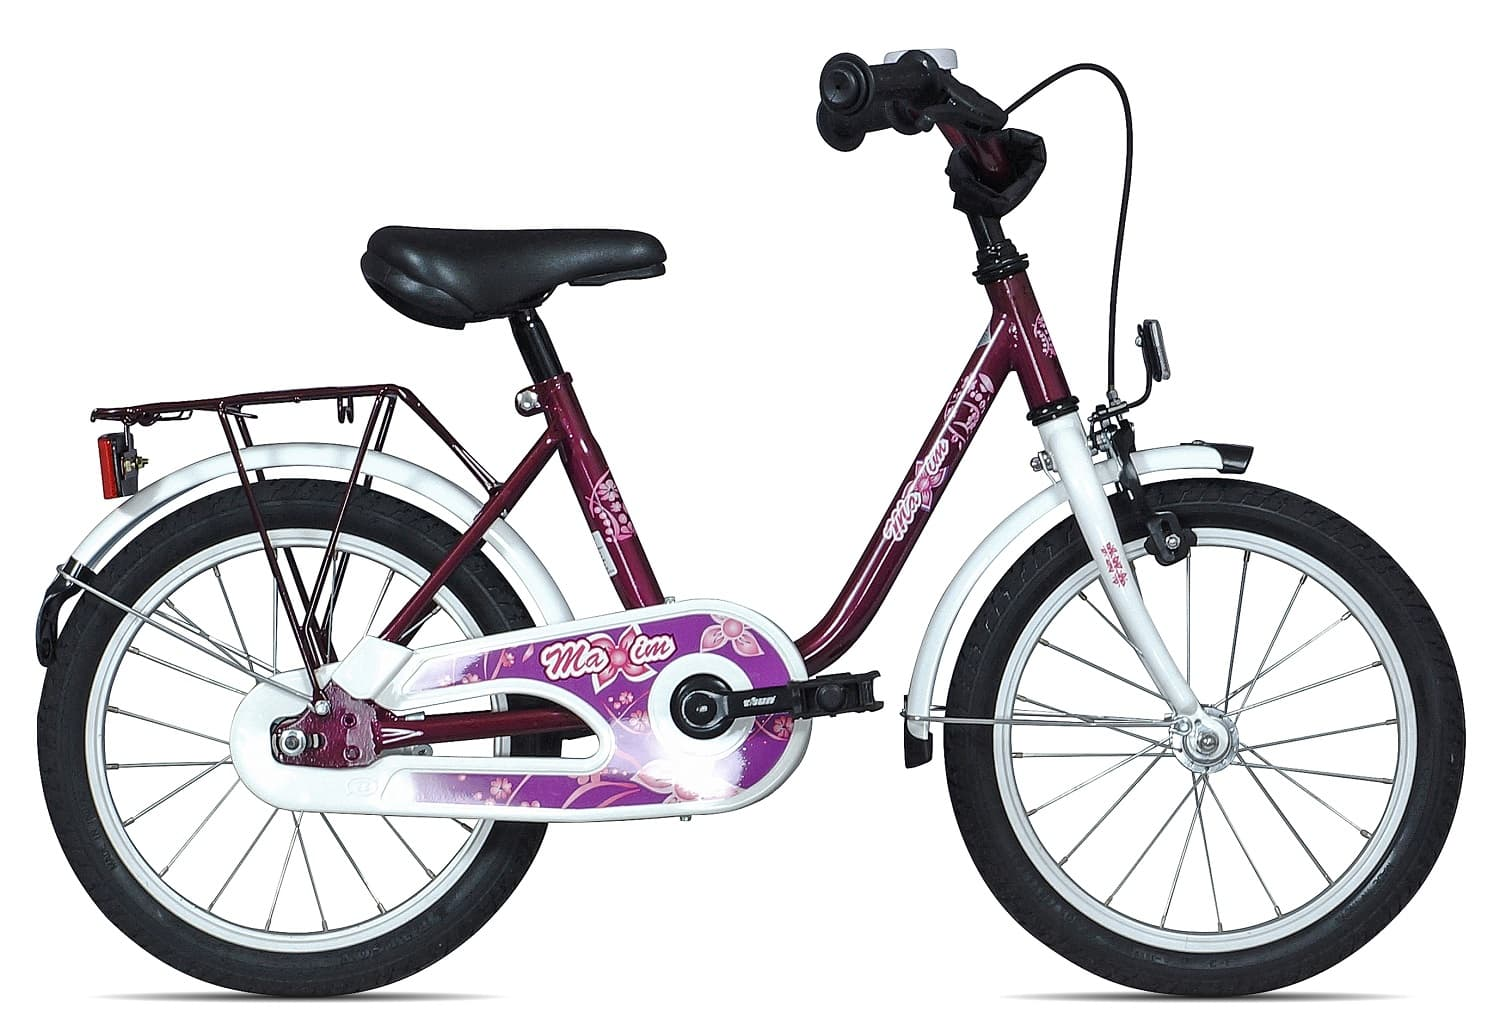 maxim kinderfahrrad 16 zoll 27 cm lila wei jetzt. Black Bedroom Furniture Sets. Home Design Ideas